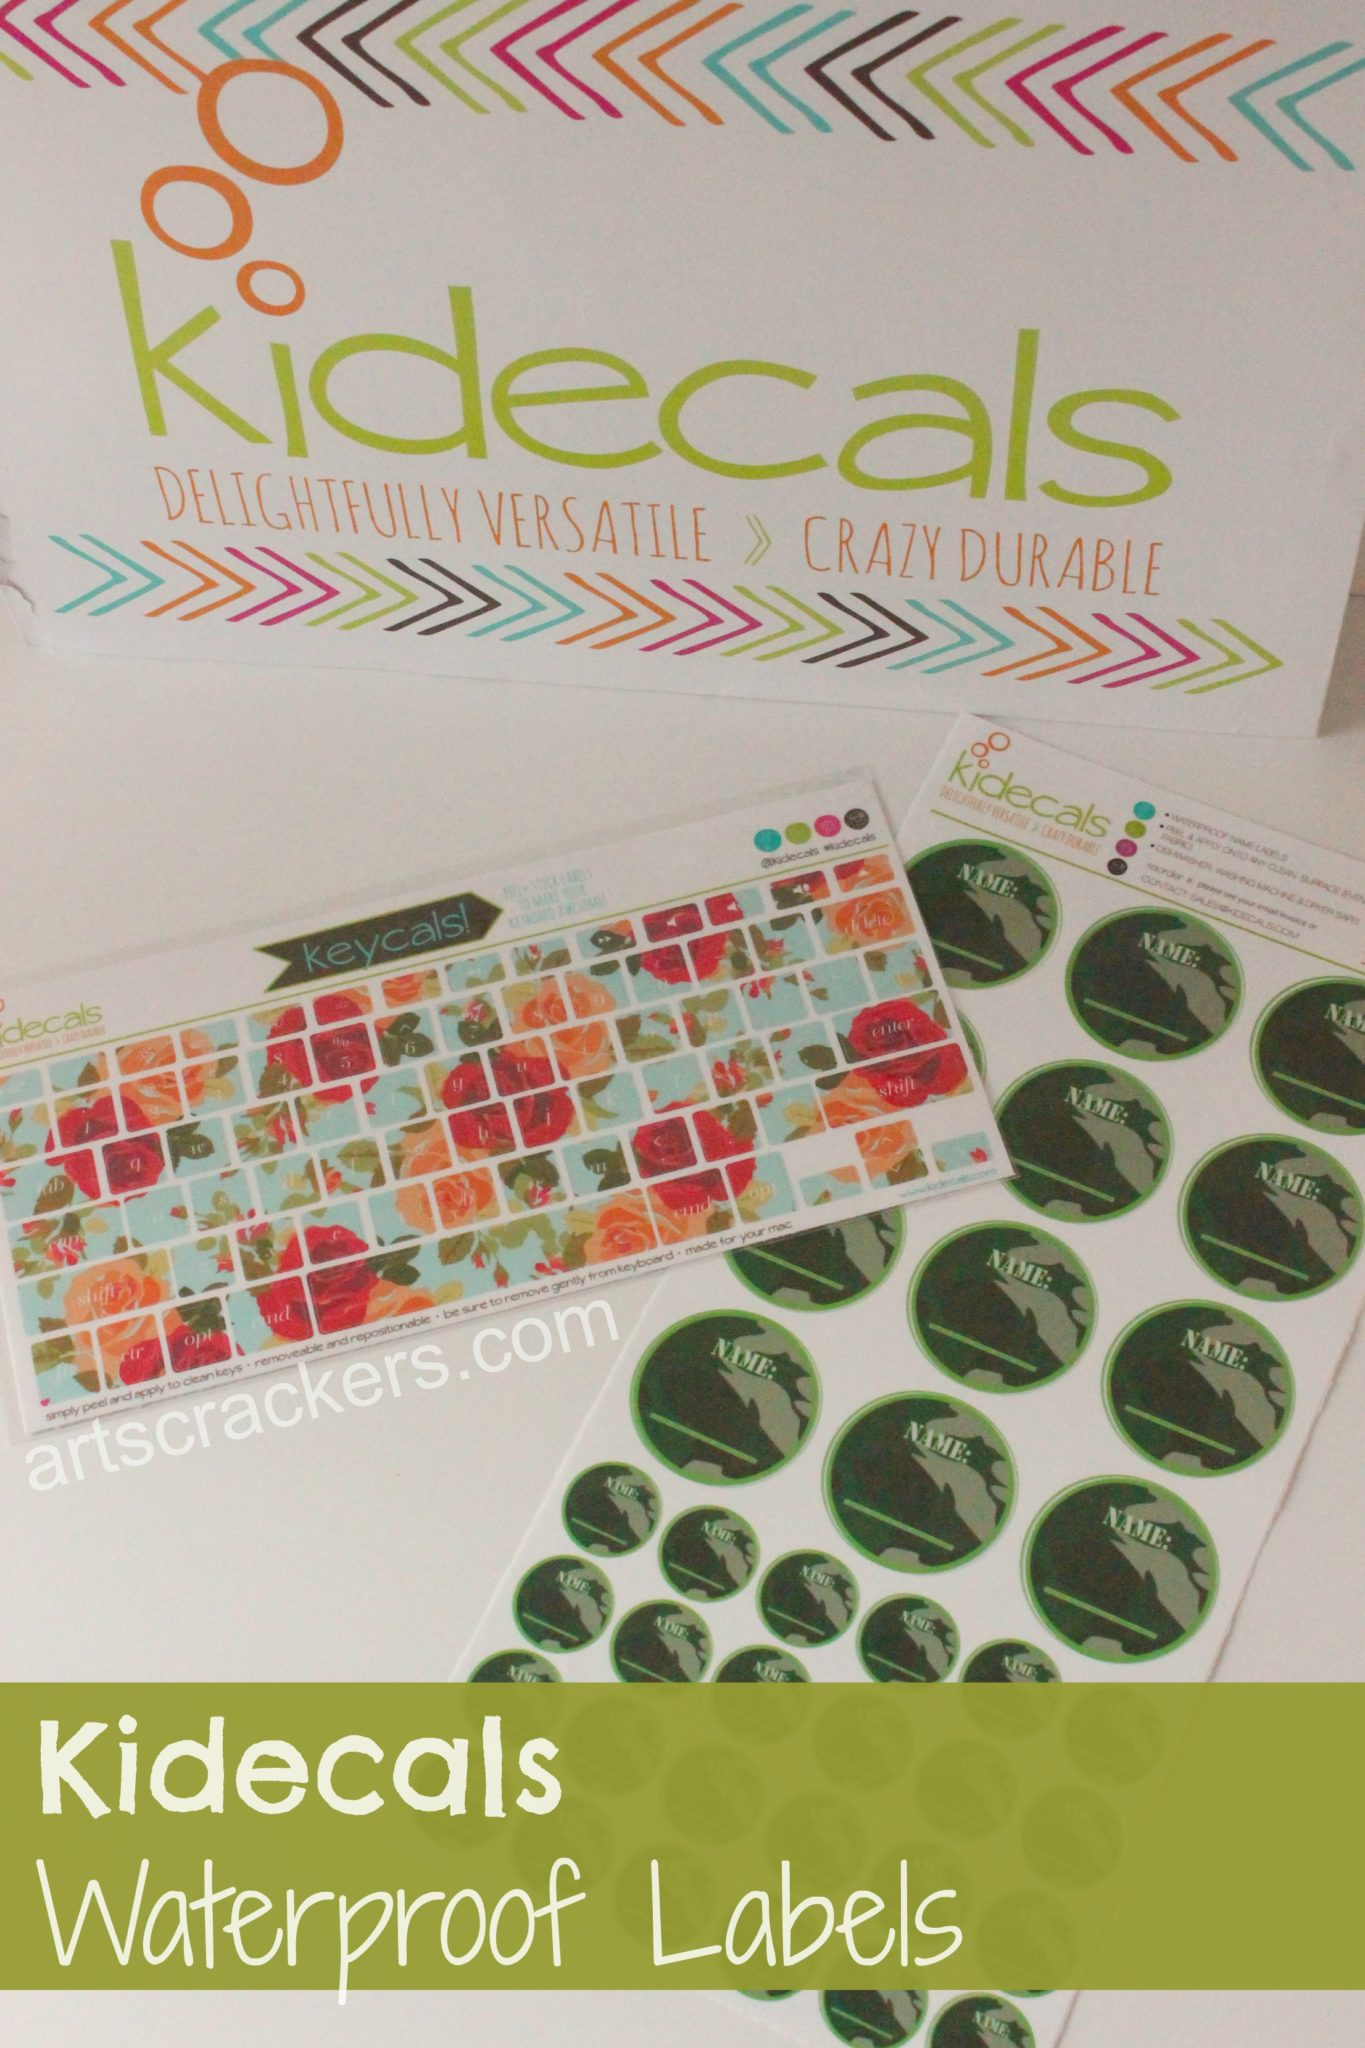 Kidecals Waterproof Labels